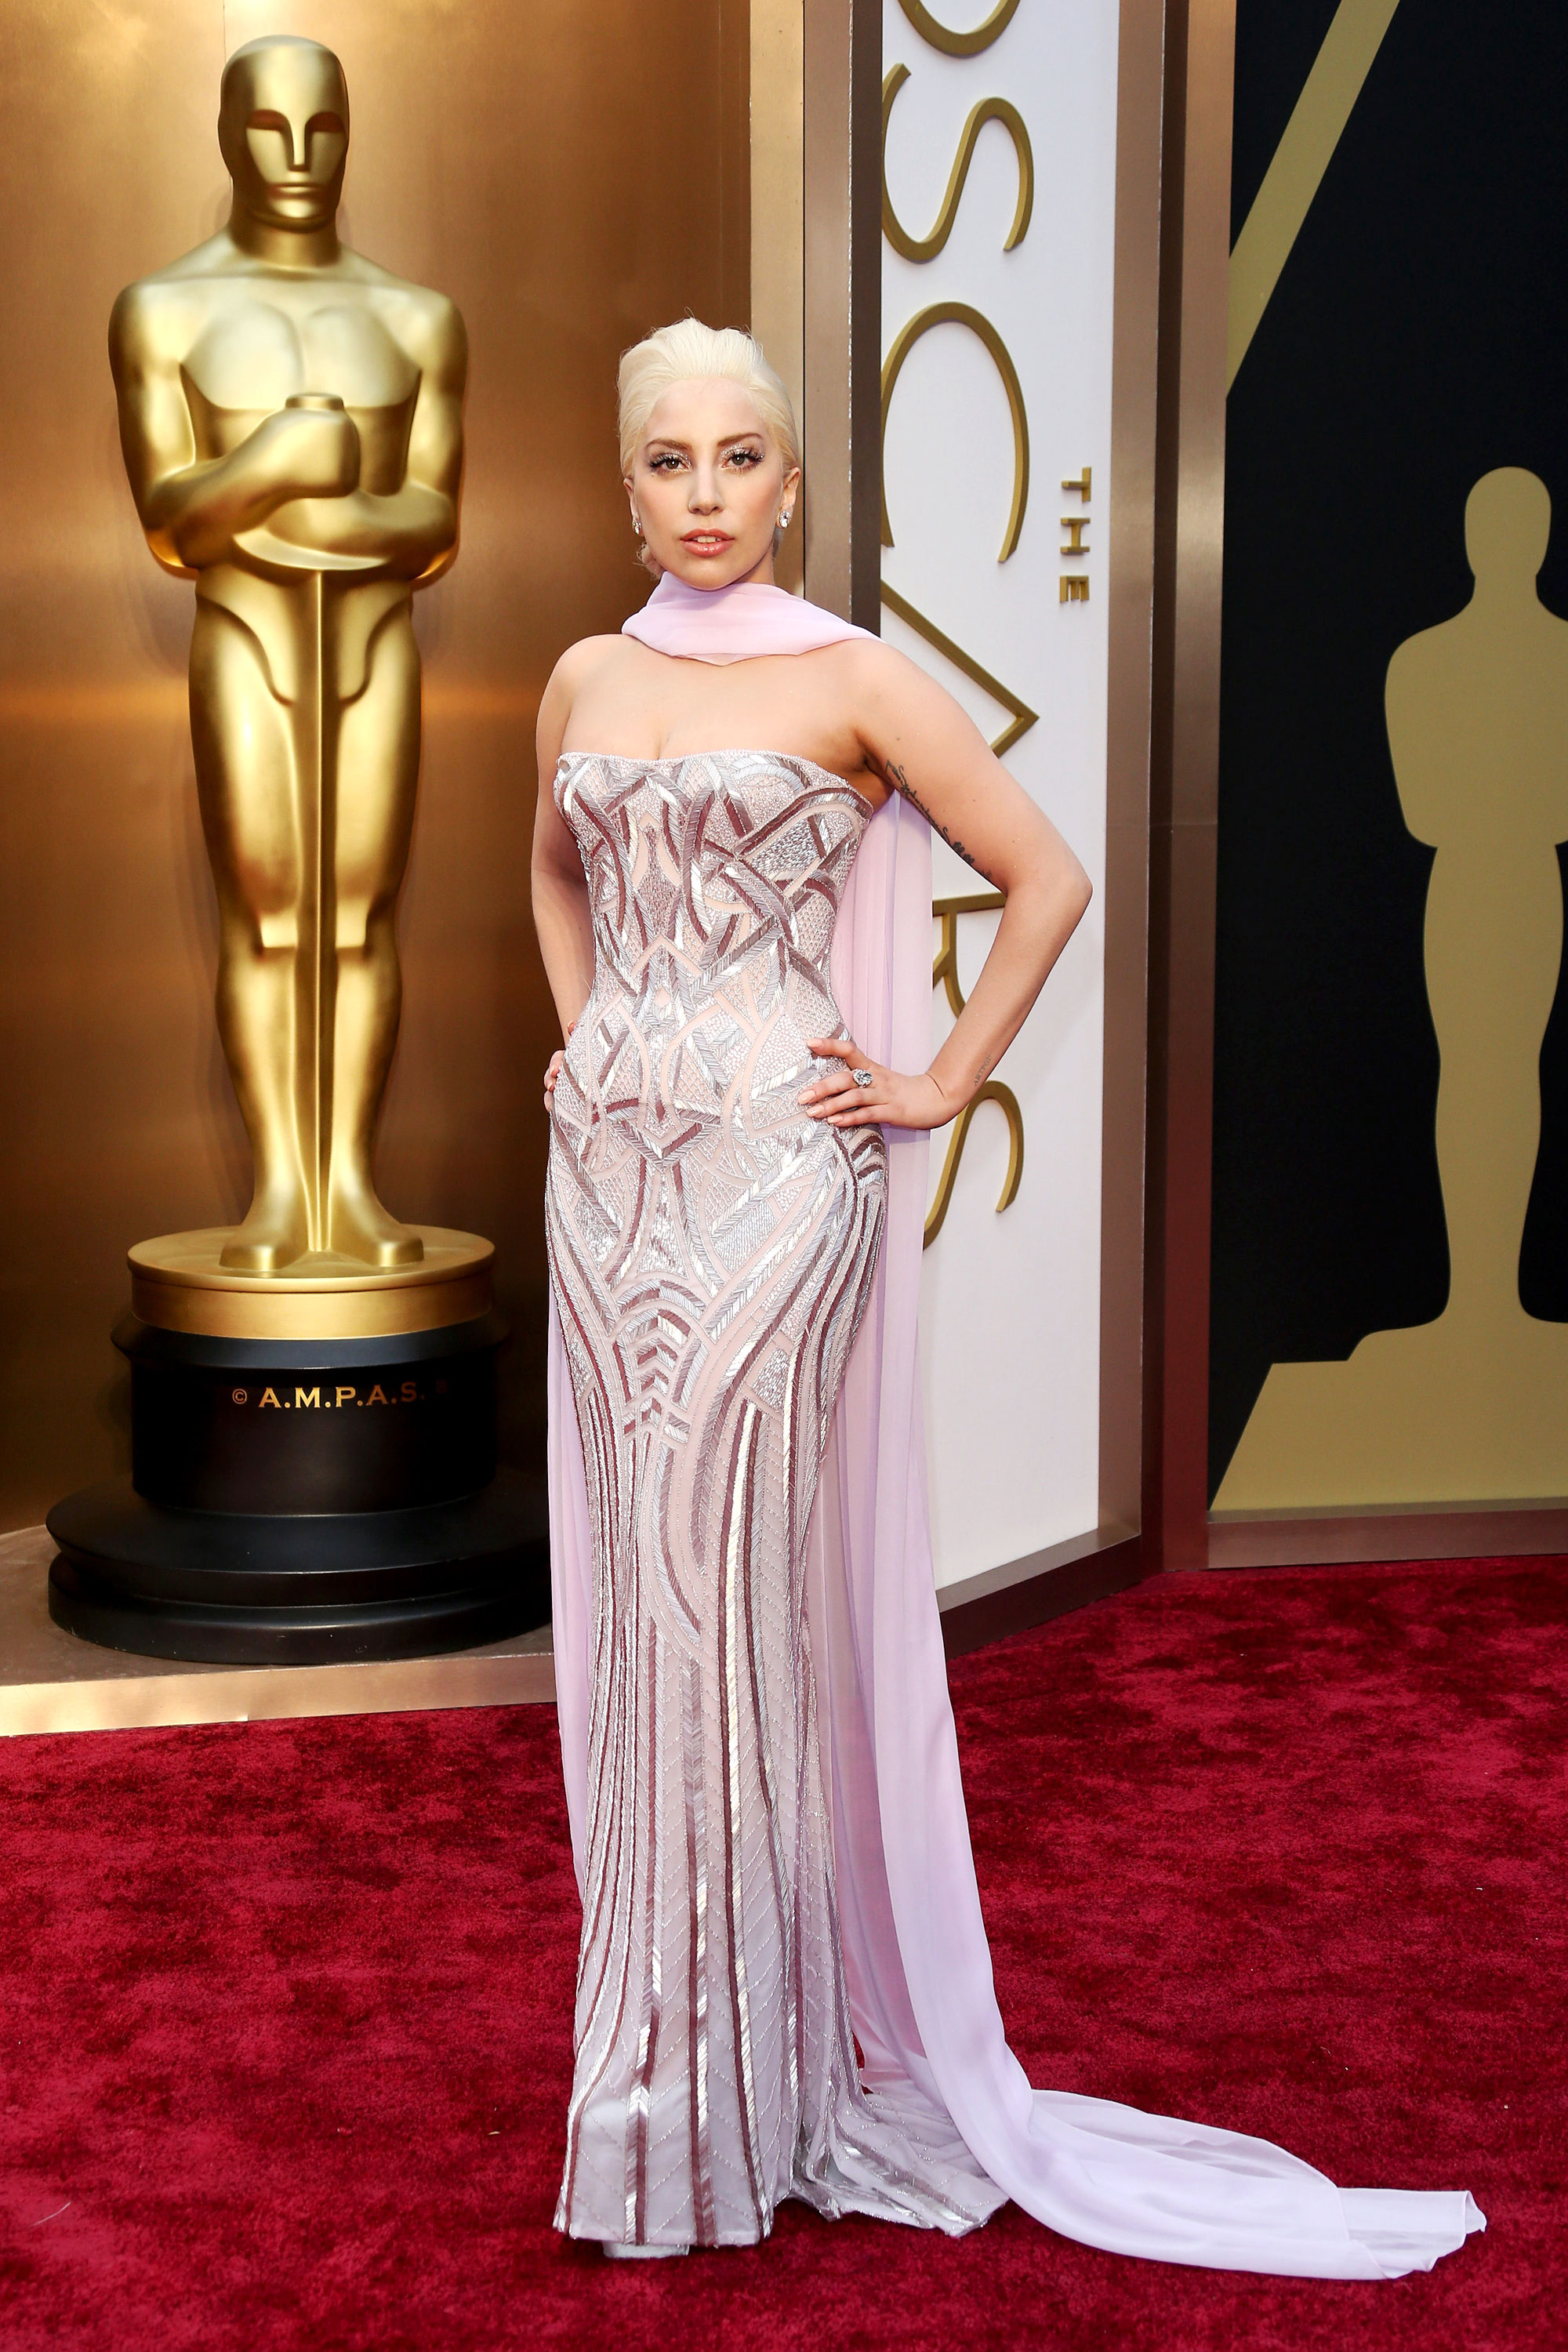 Image result for Lady Gaga white bodysuit/gown in 2016